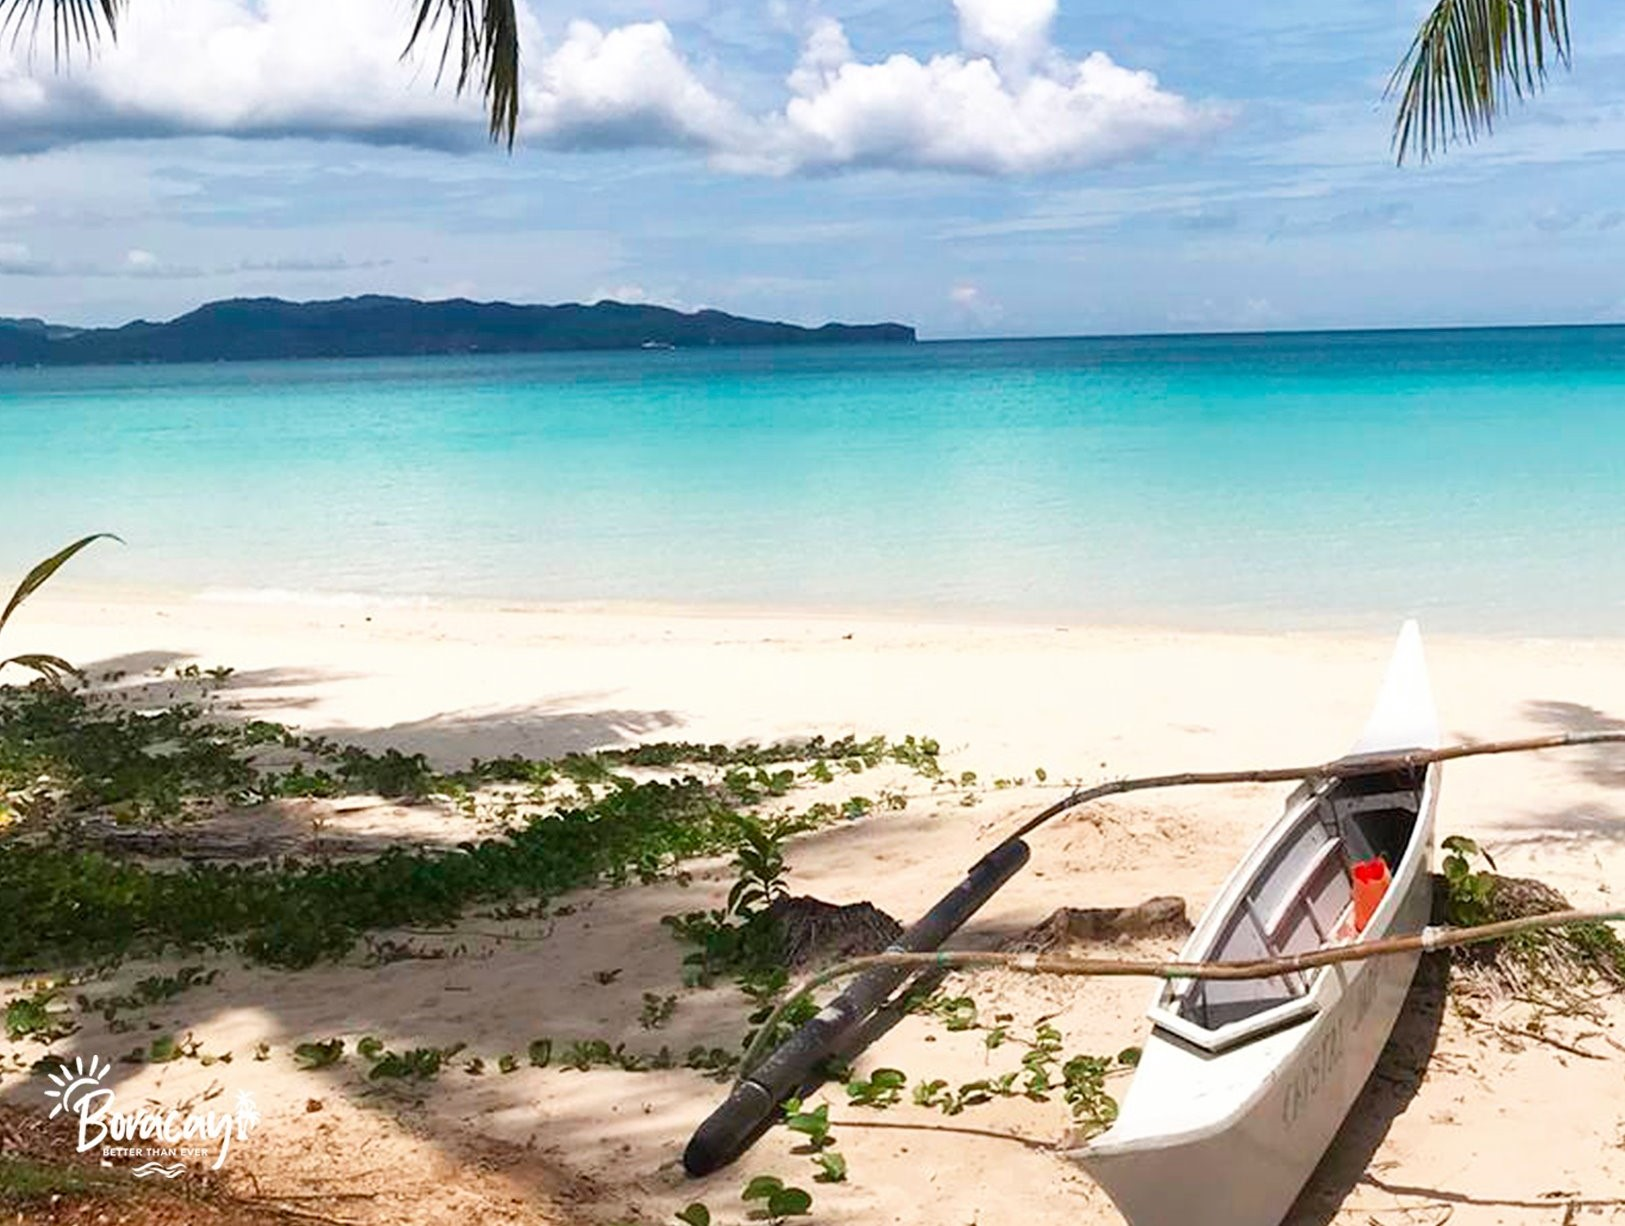 Blue waters and white sand beaches of Boracay